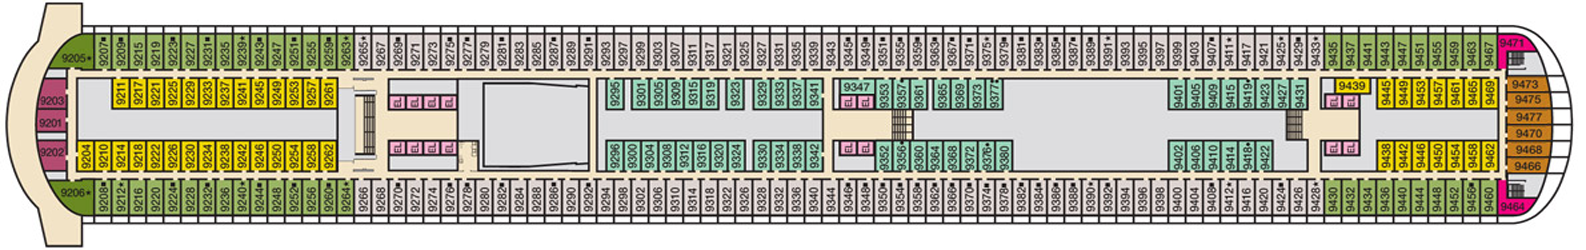 Carnival Victory 2013 Deck Plans